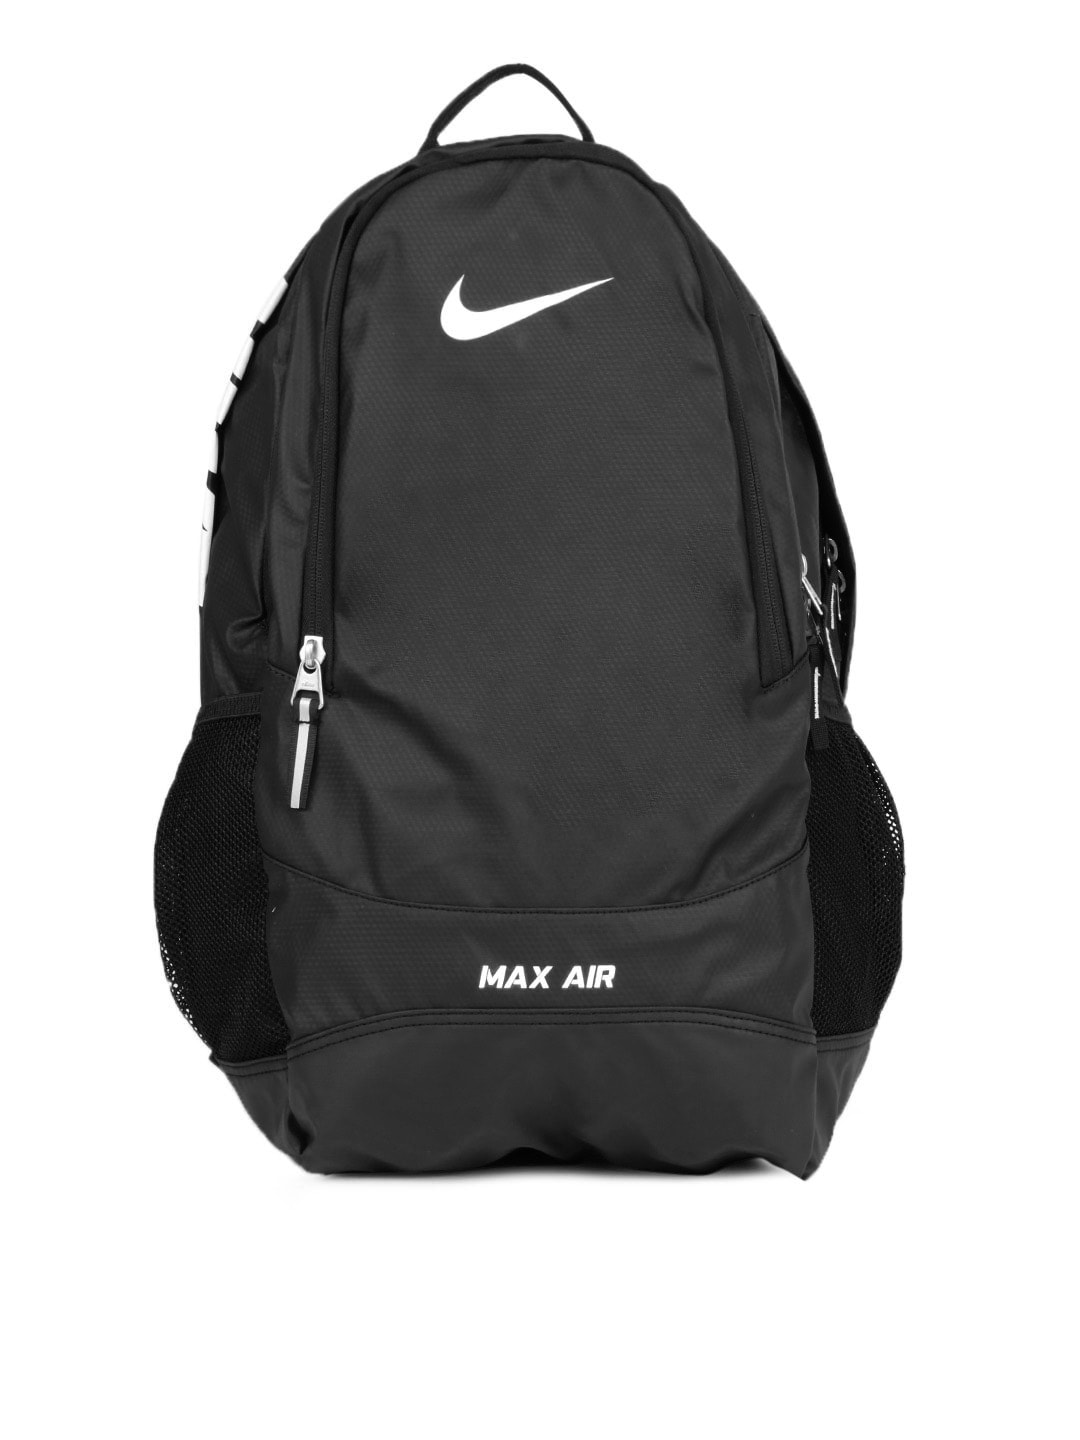 642620cb0cb Nike ba4595-067 Unisex Team Training Max Air Black Backpack- Price in India